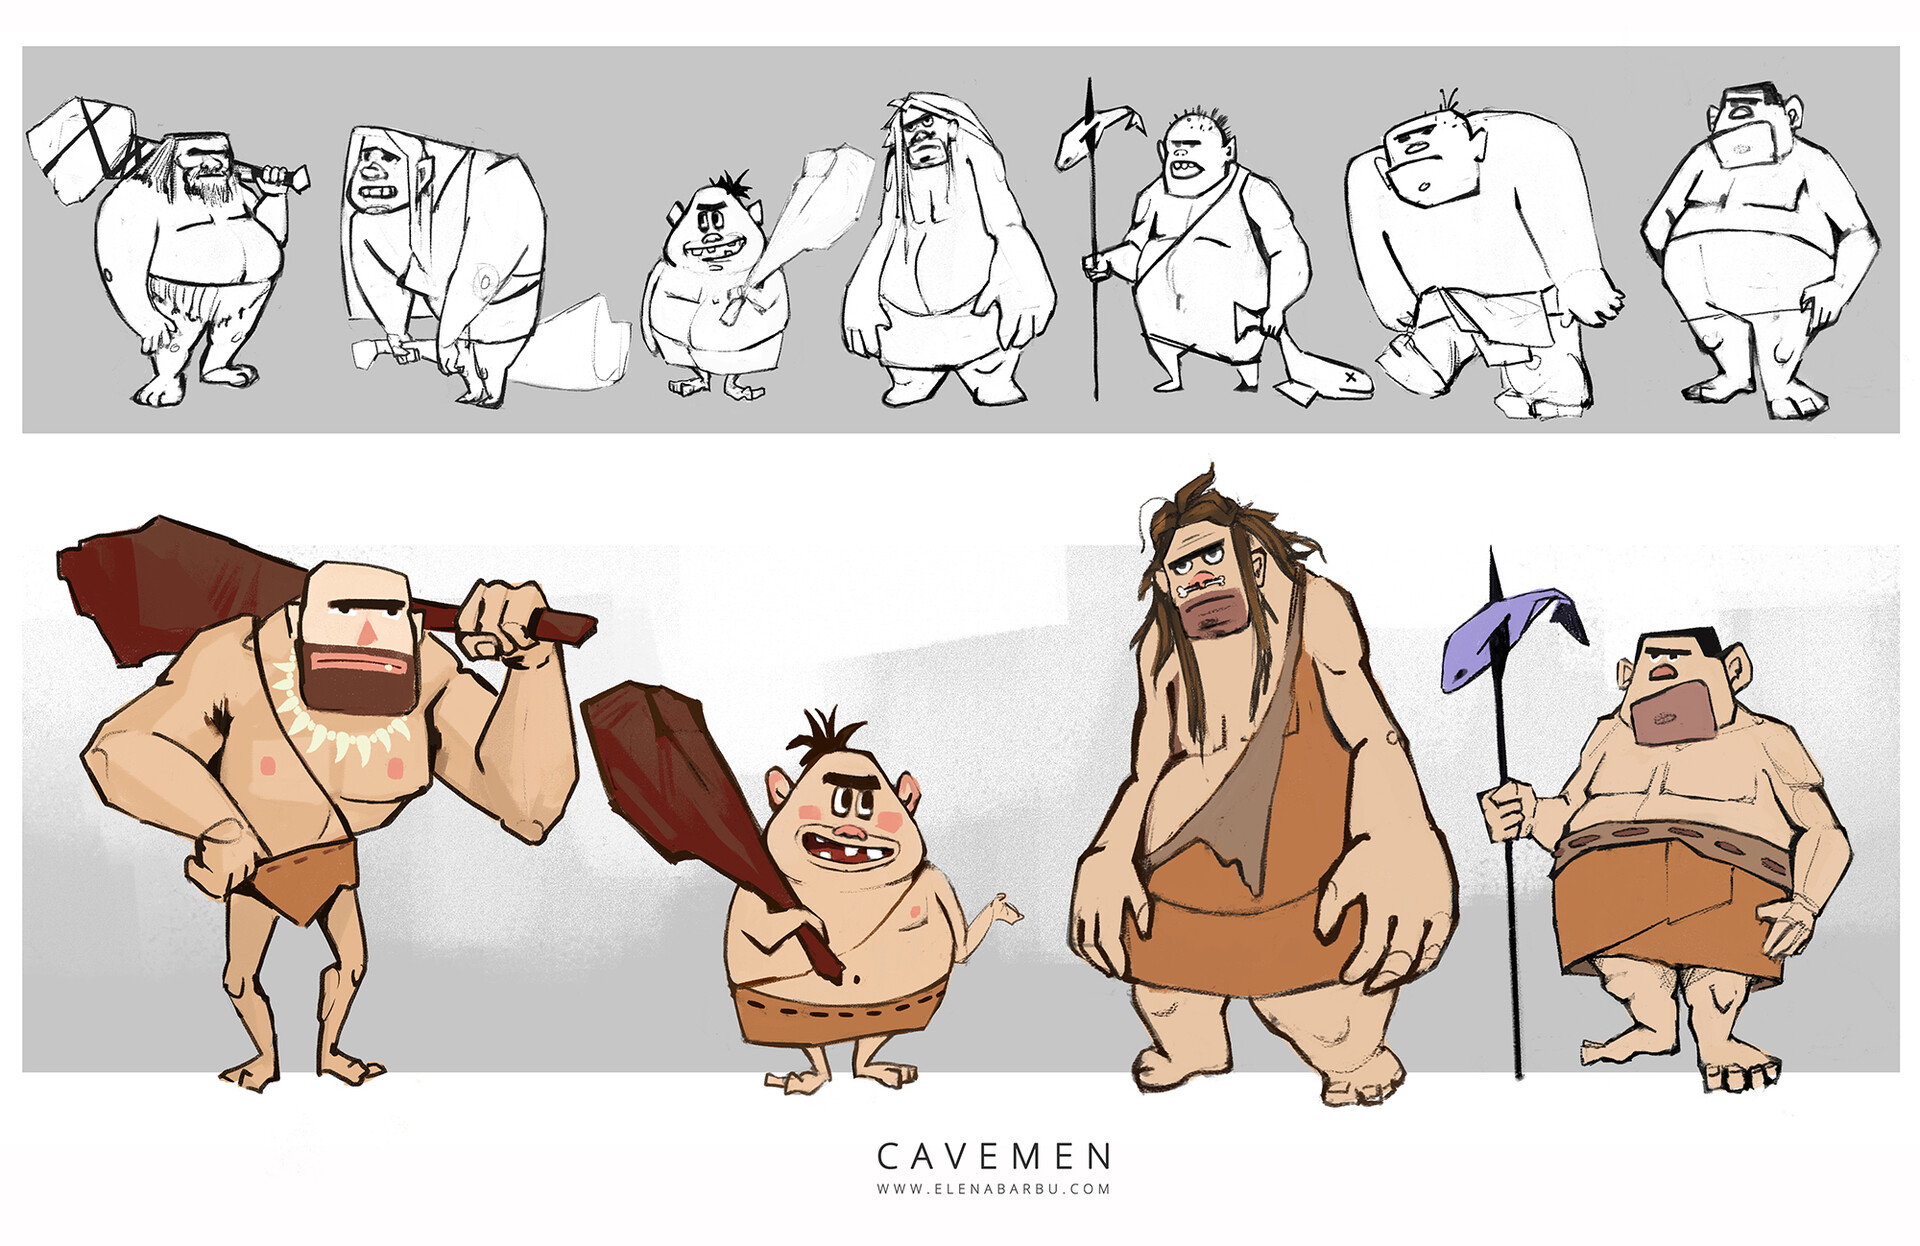 Elena barbu cavemen